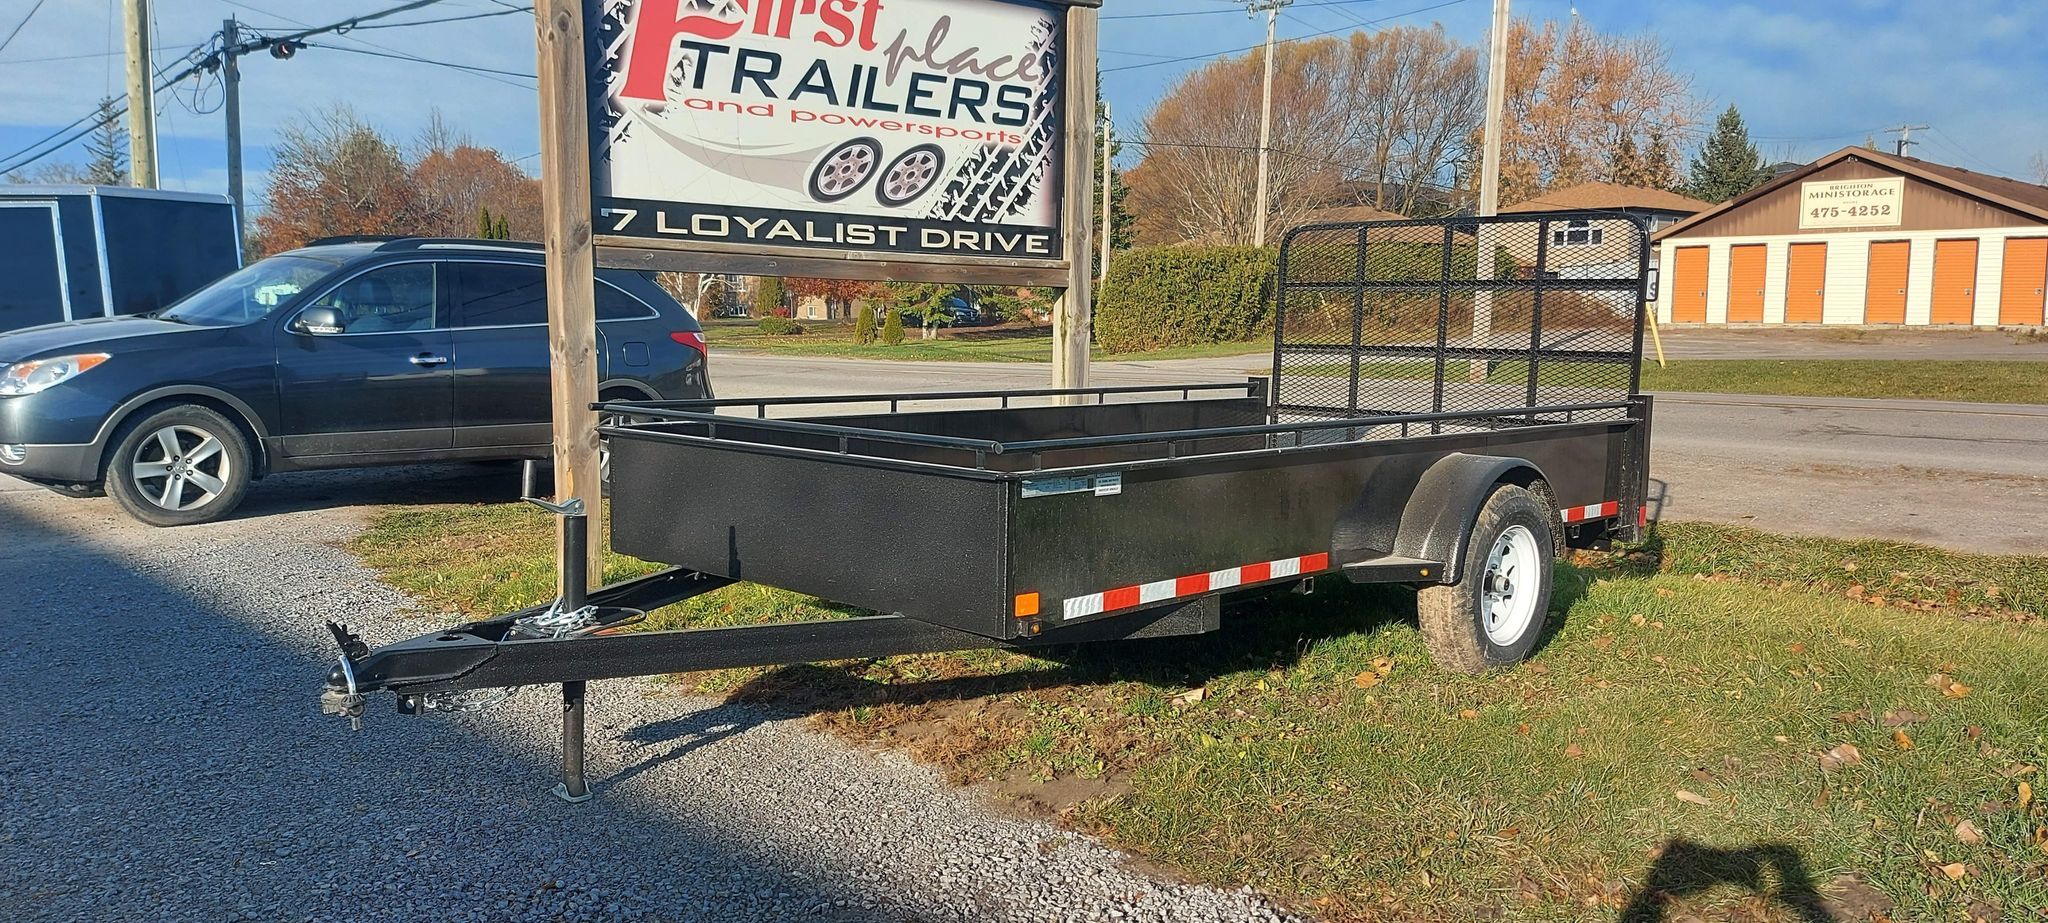 2020 CANADA TRAILER 6X12 STEEL SIDE UTILITY